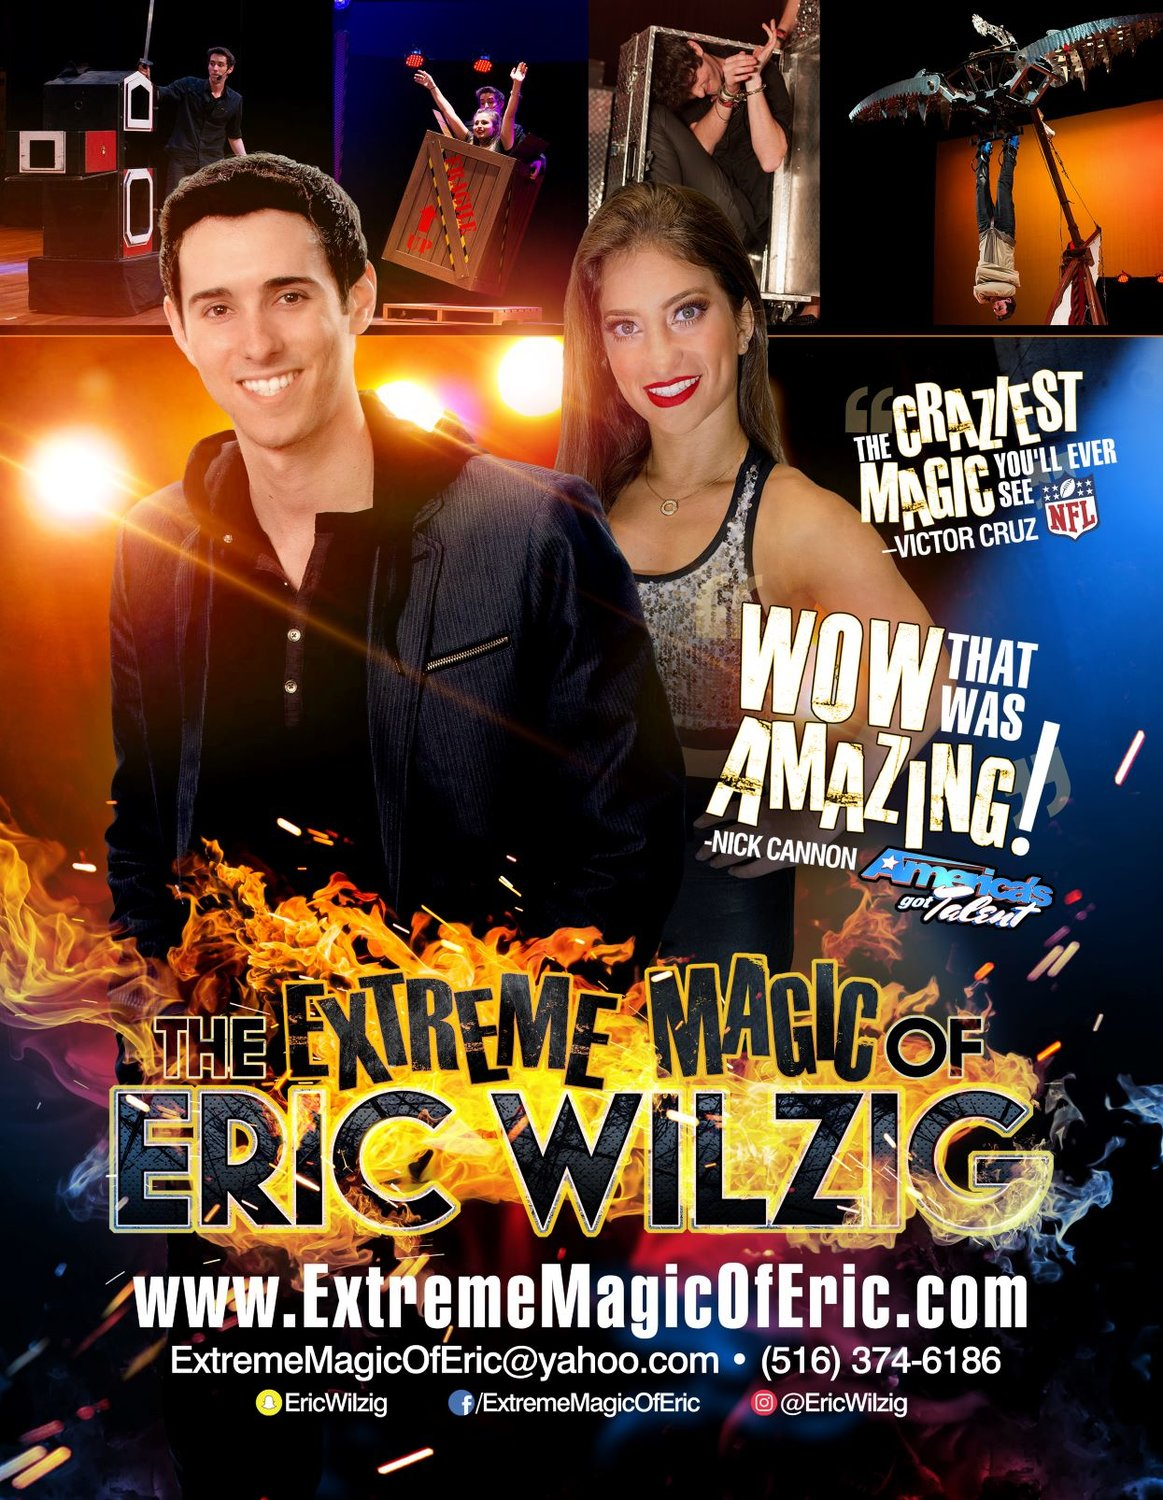 Magician and illusionist Eric Wilzig and his wife, Eliana, perform shows at home during the coronavirus pandemic.